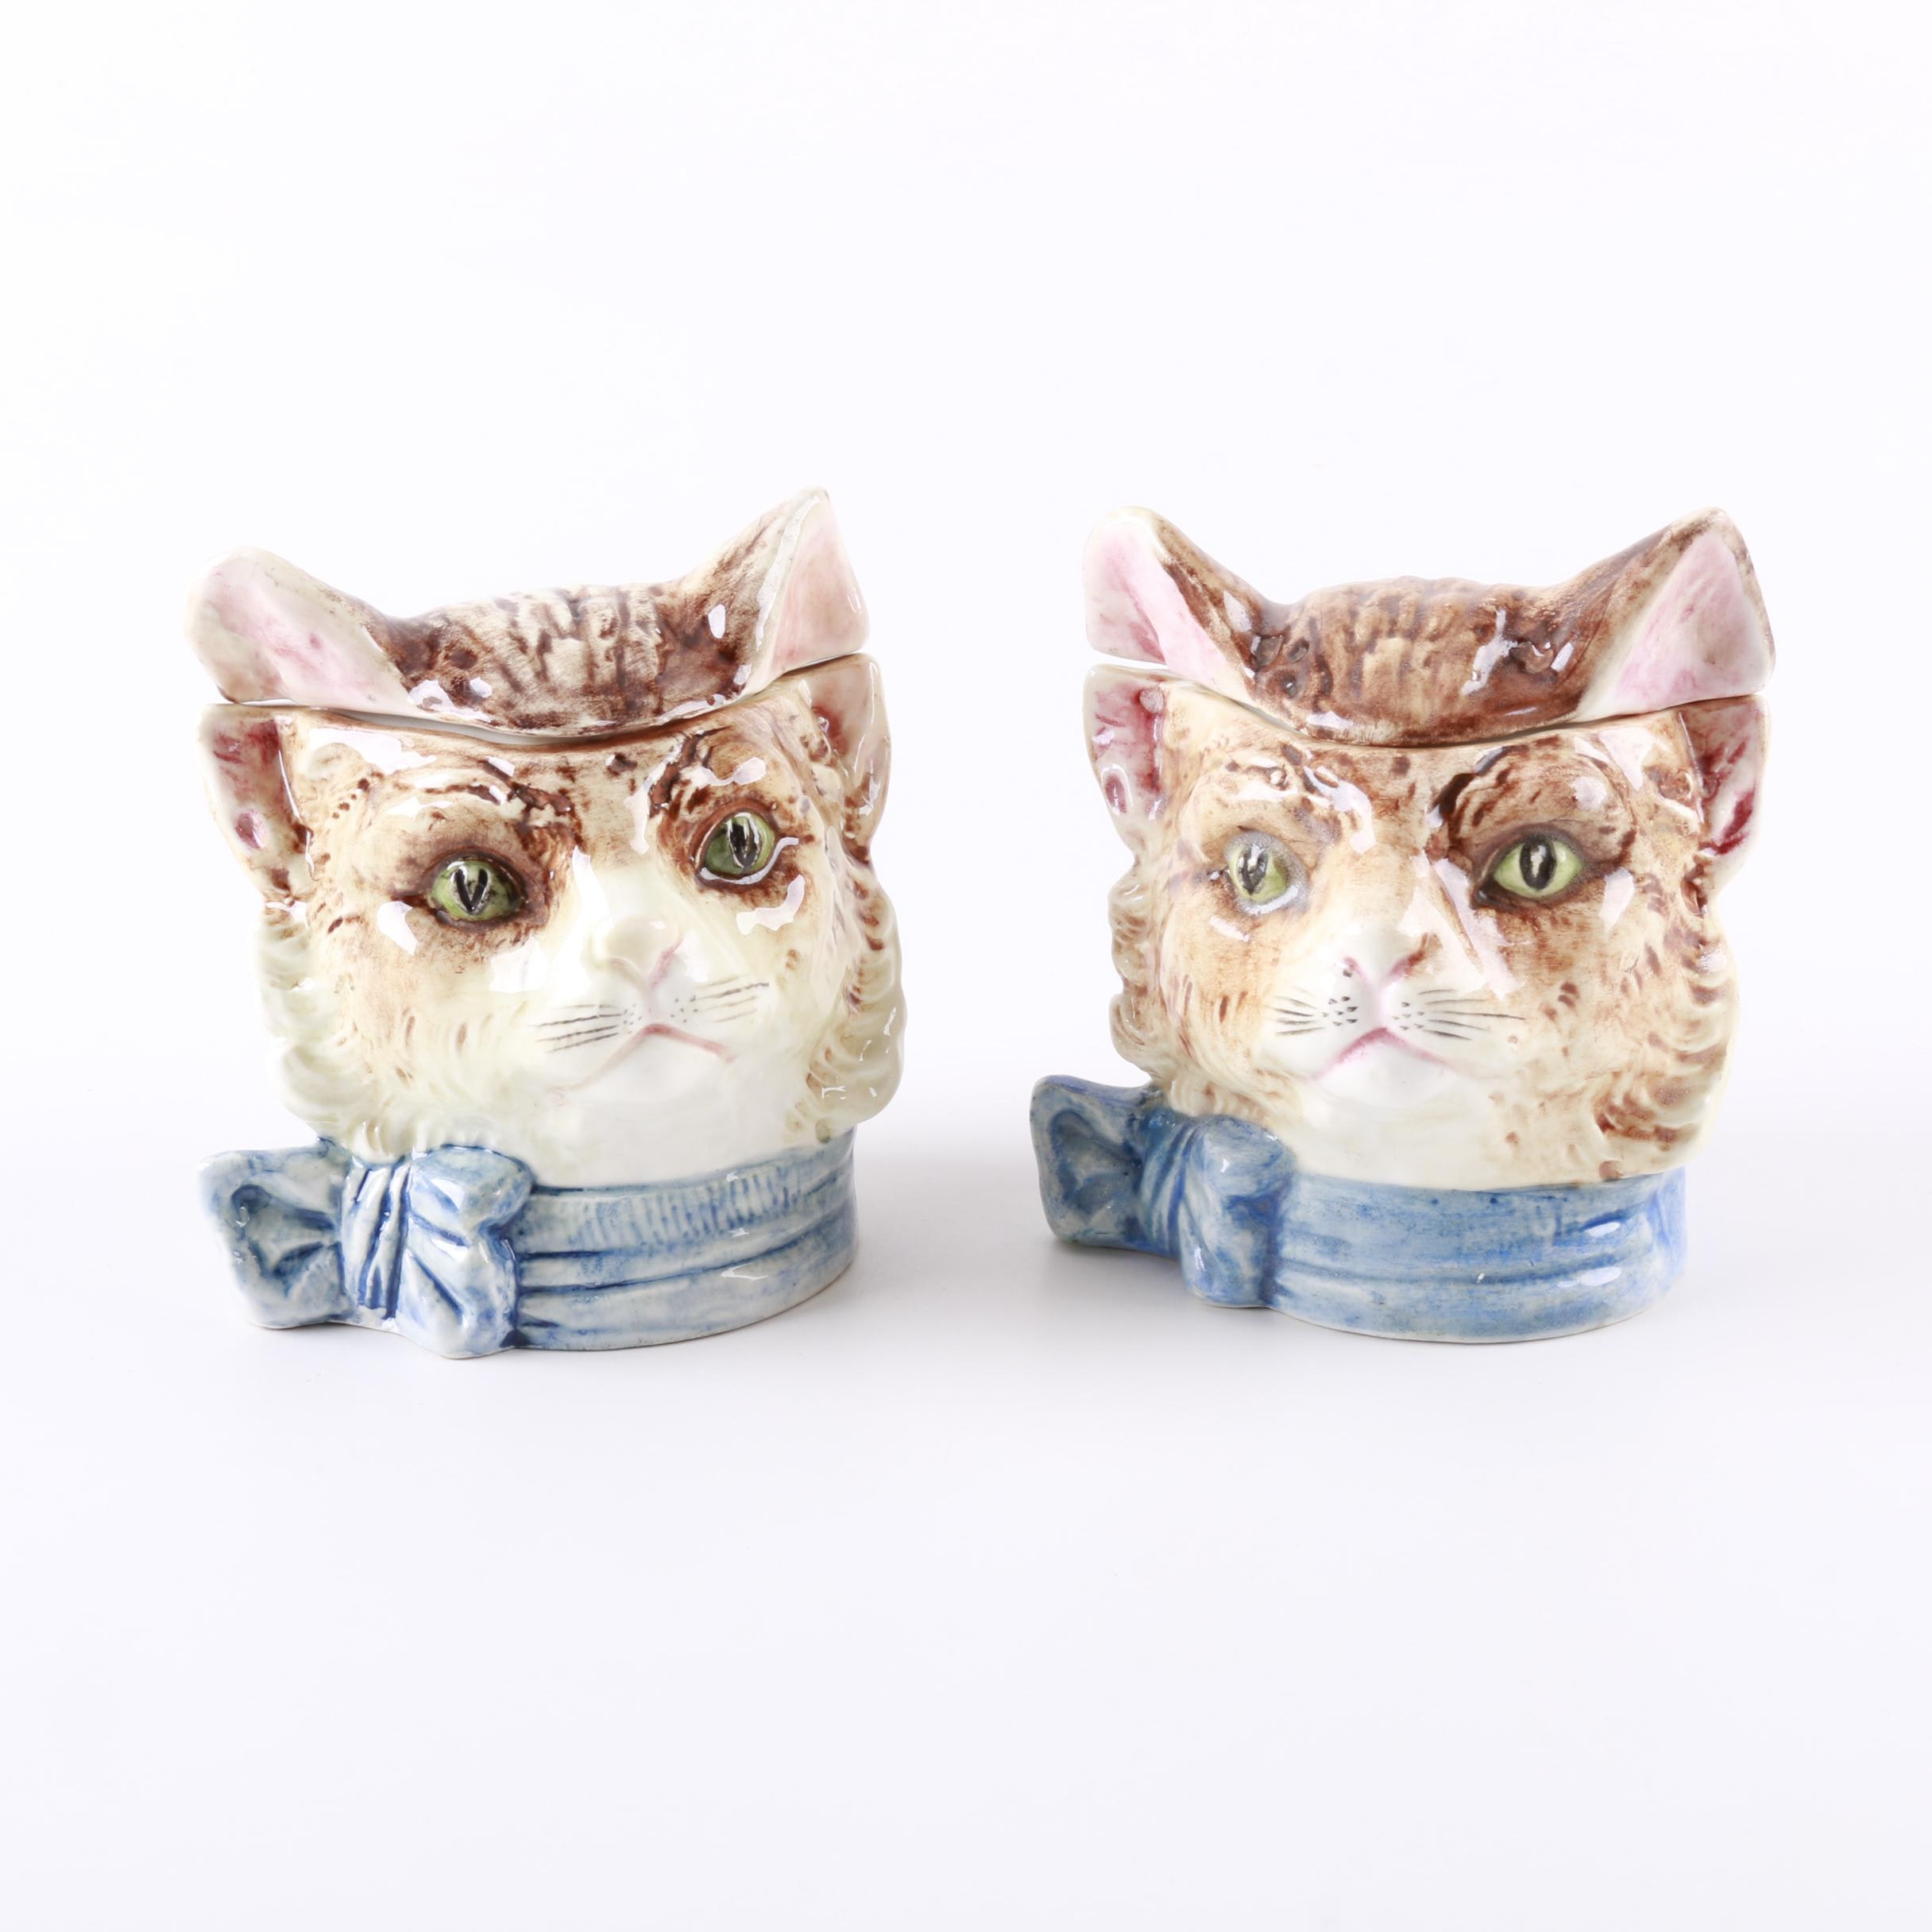 Vintage Ceramic Cat Head Humidors